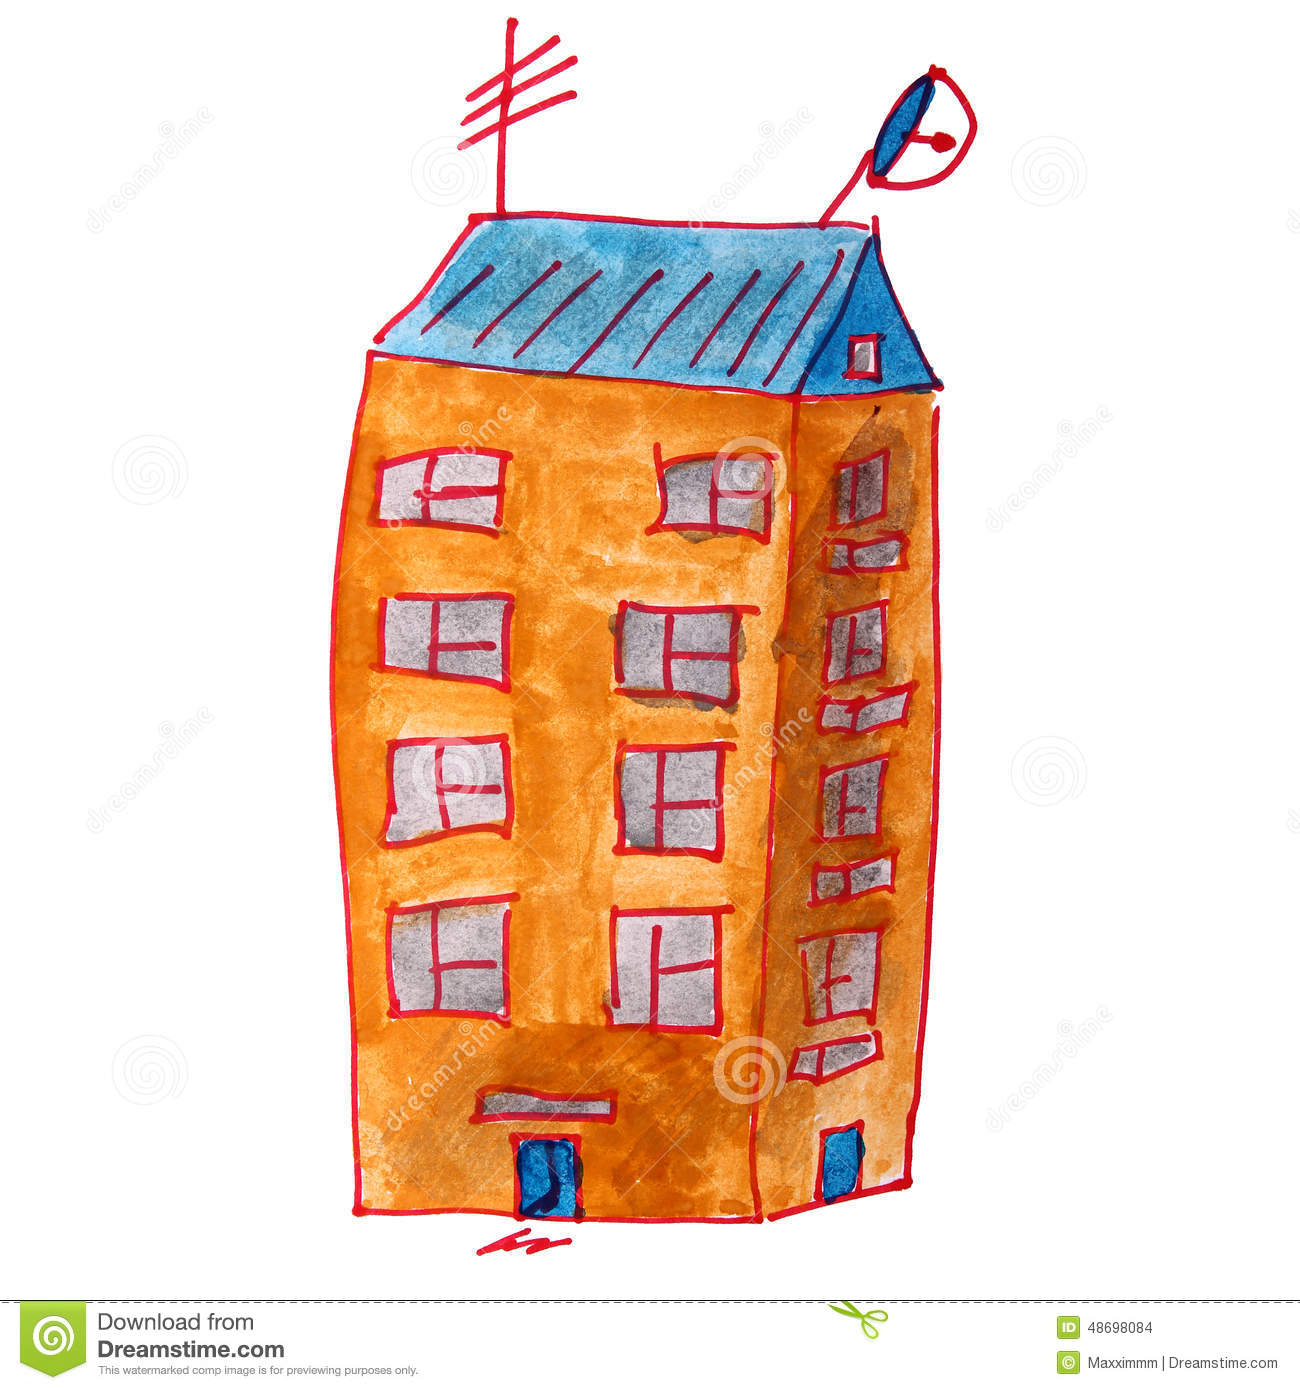 Drawing Cartoon Kids Watercolor High rise Building Stock